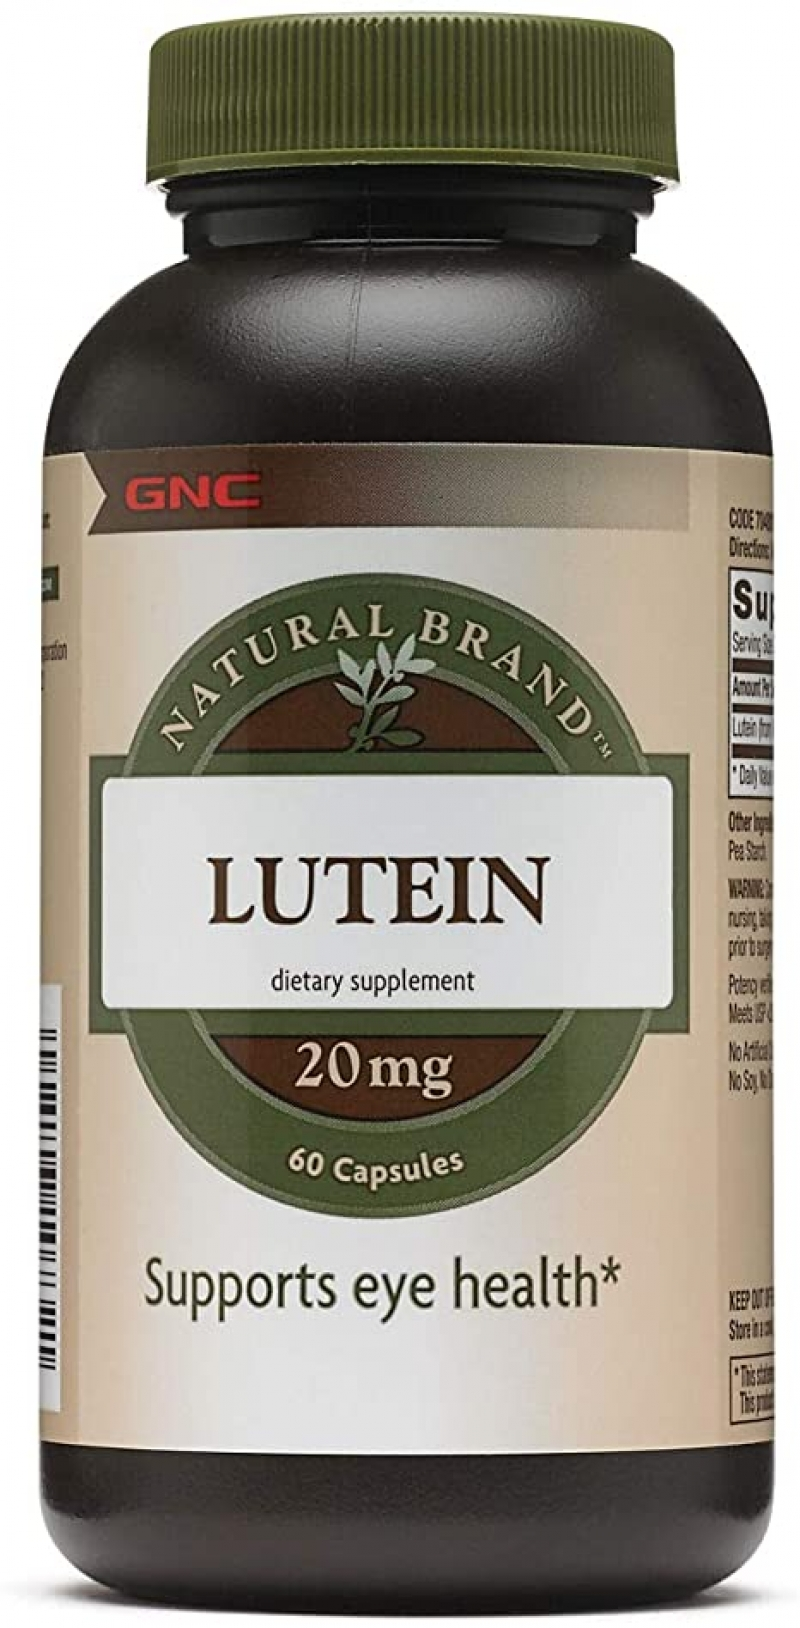 ihocon: Gnc Natural Brand Lutein 20 Mg Capsules, 60 Count 葉黃素